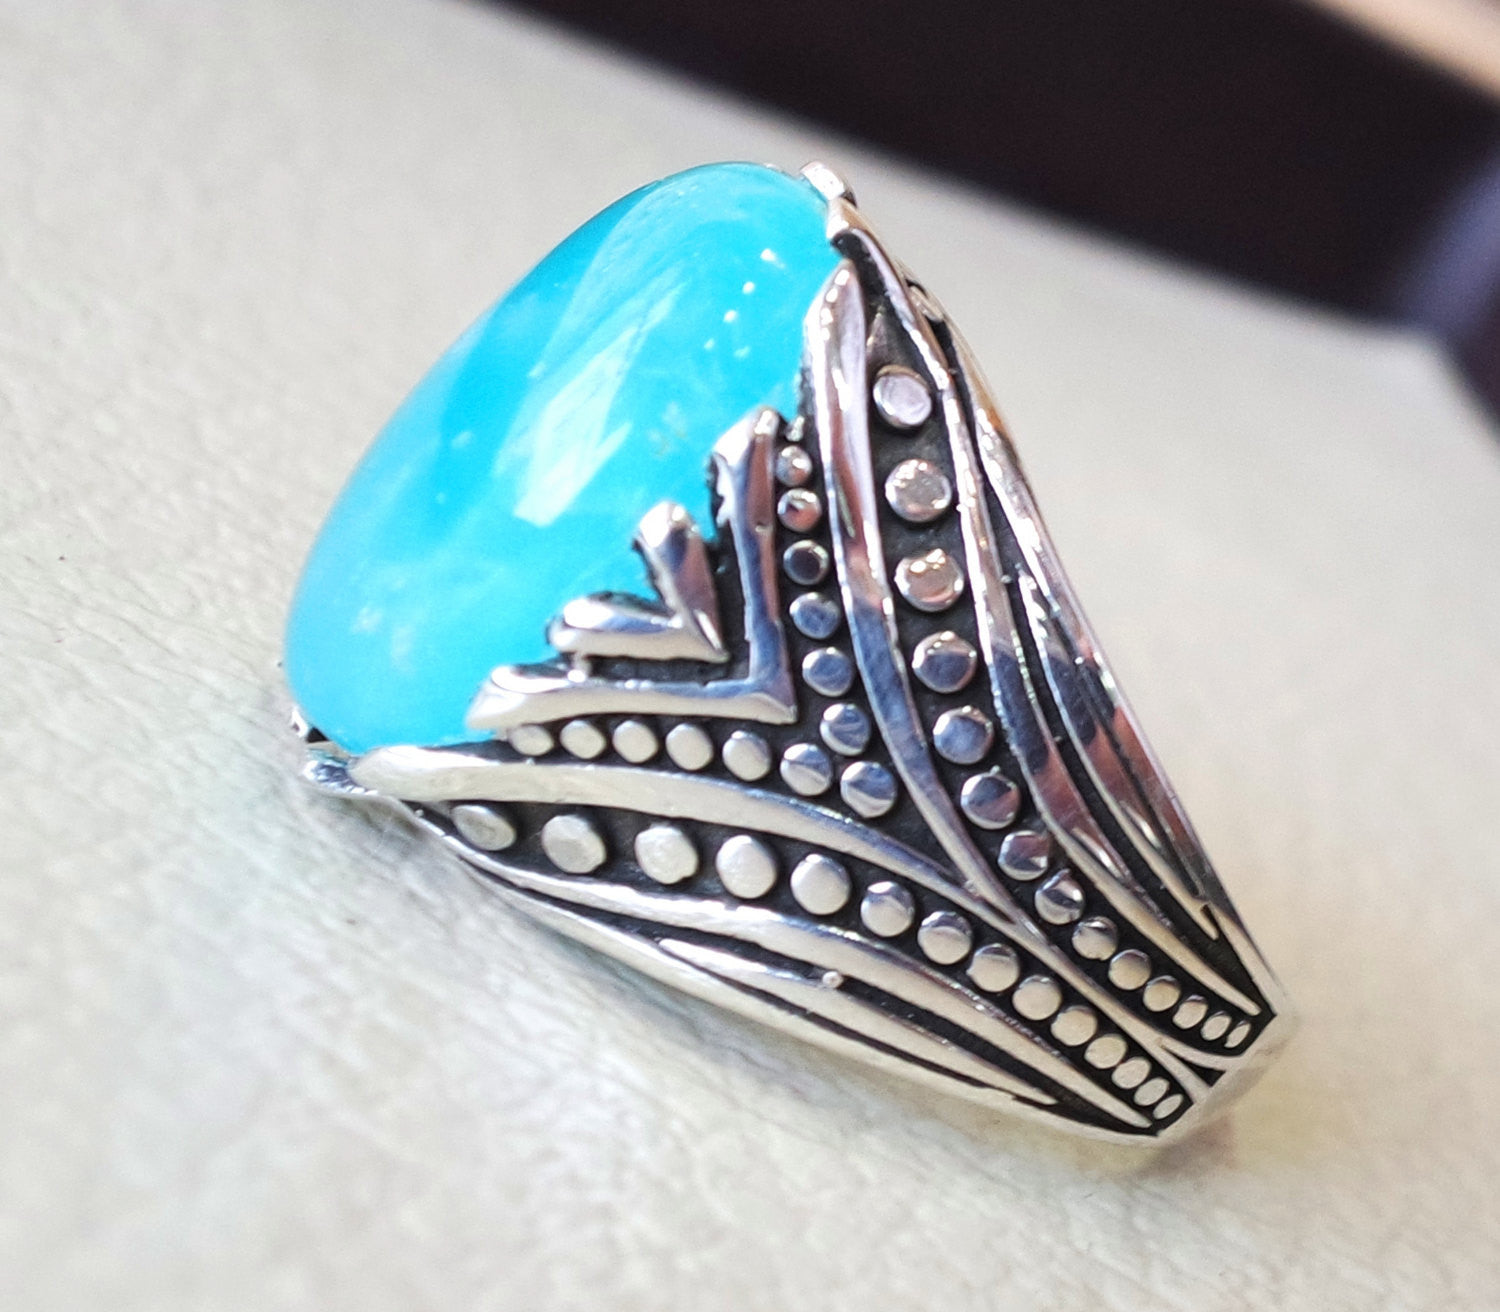 smithsonite natural sky blue stone ring sterling silver 925 men jewelry all sizes semi precious gem highest quality arabic ottoman style